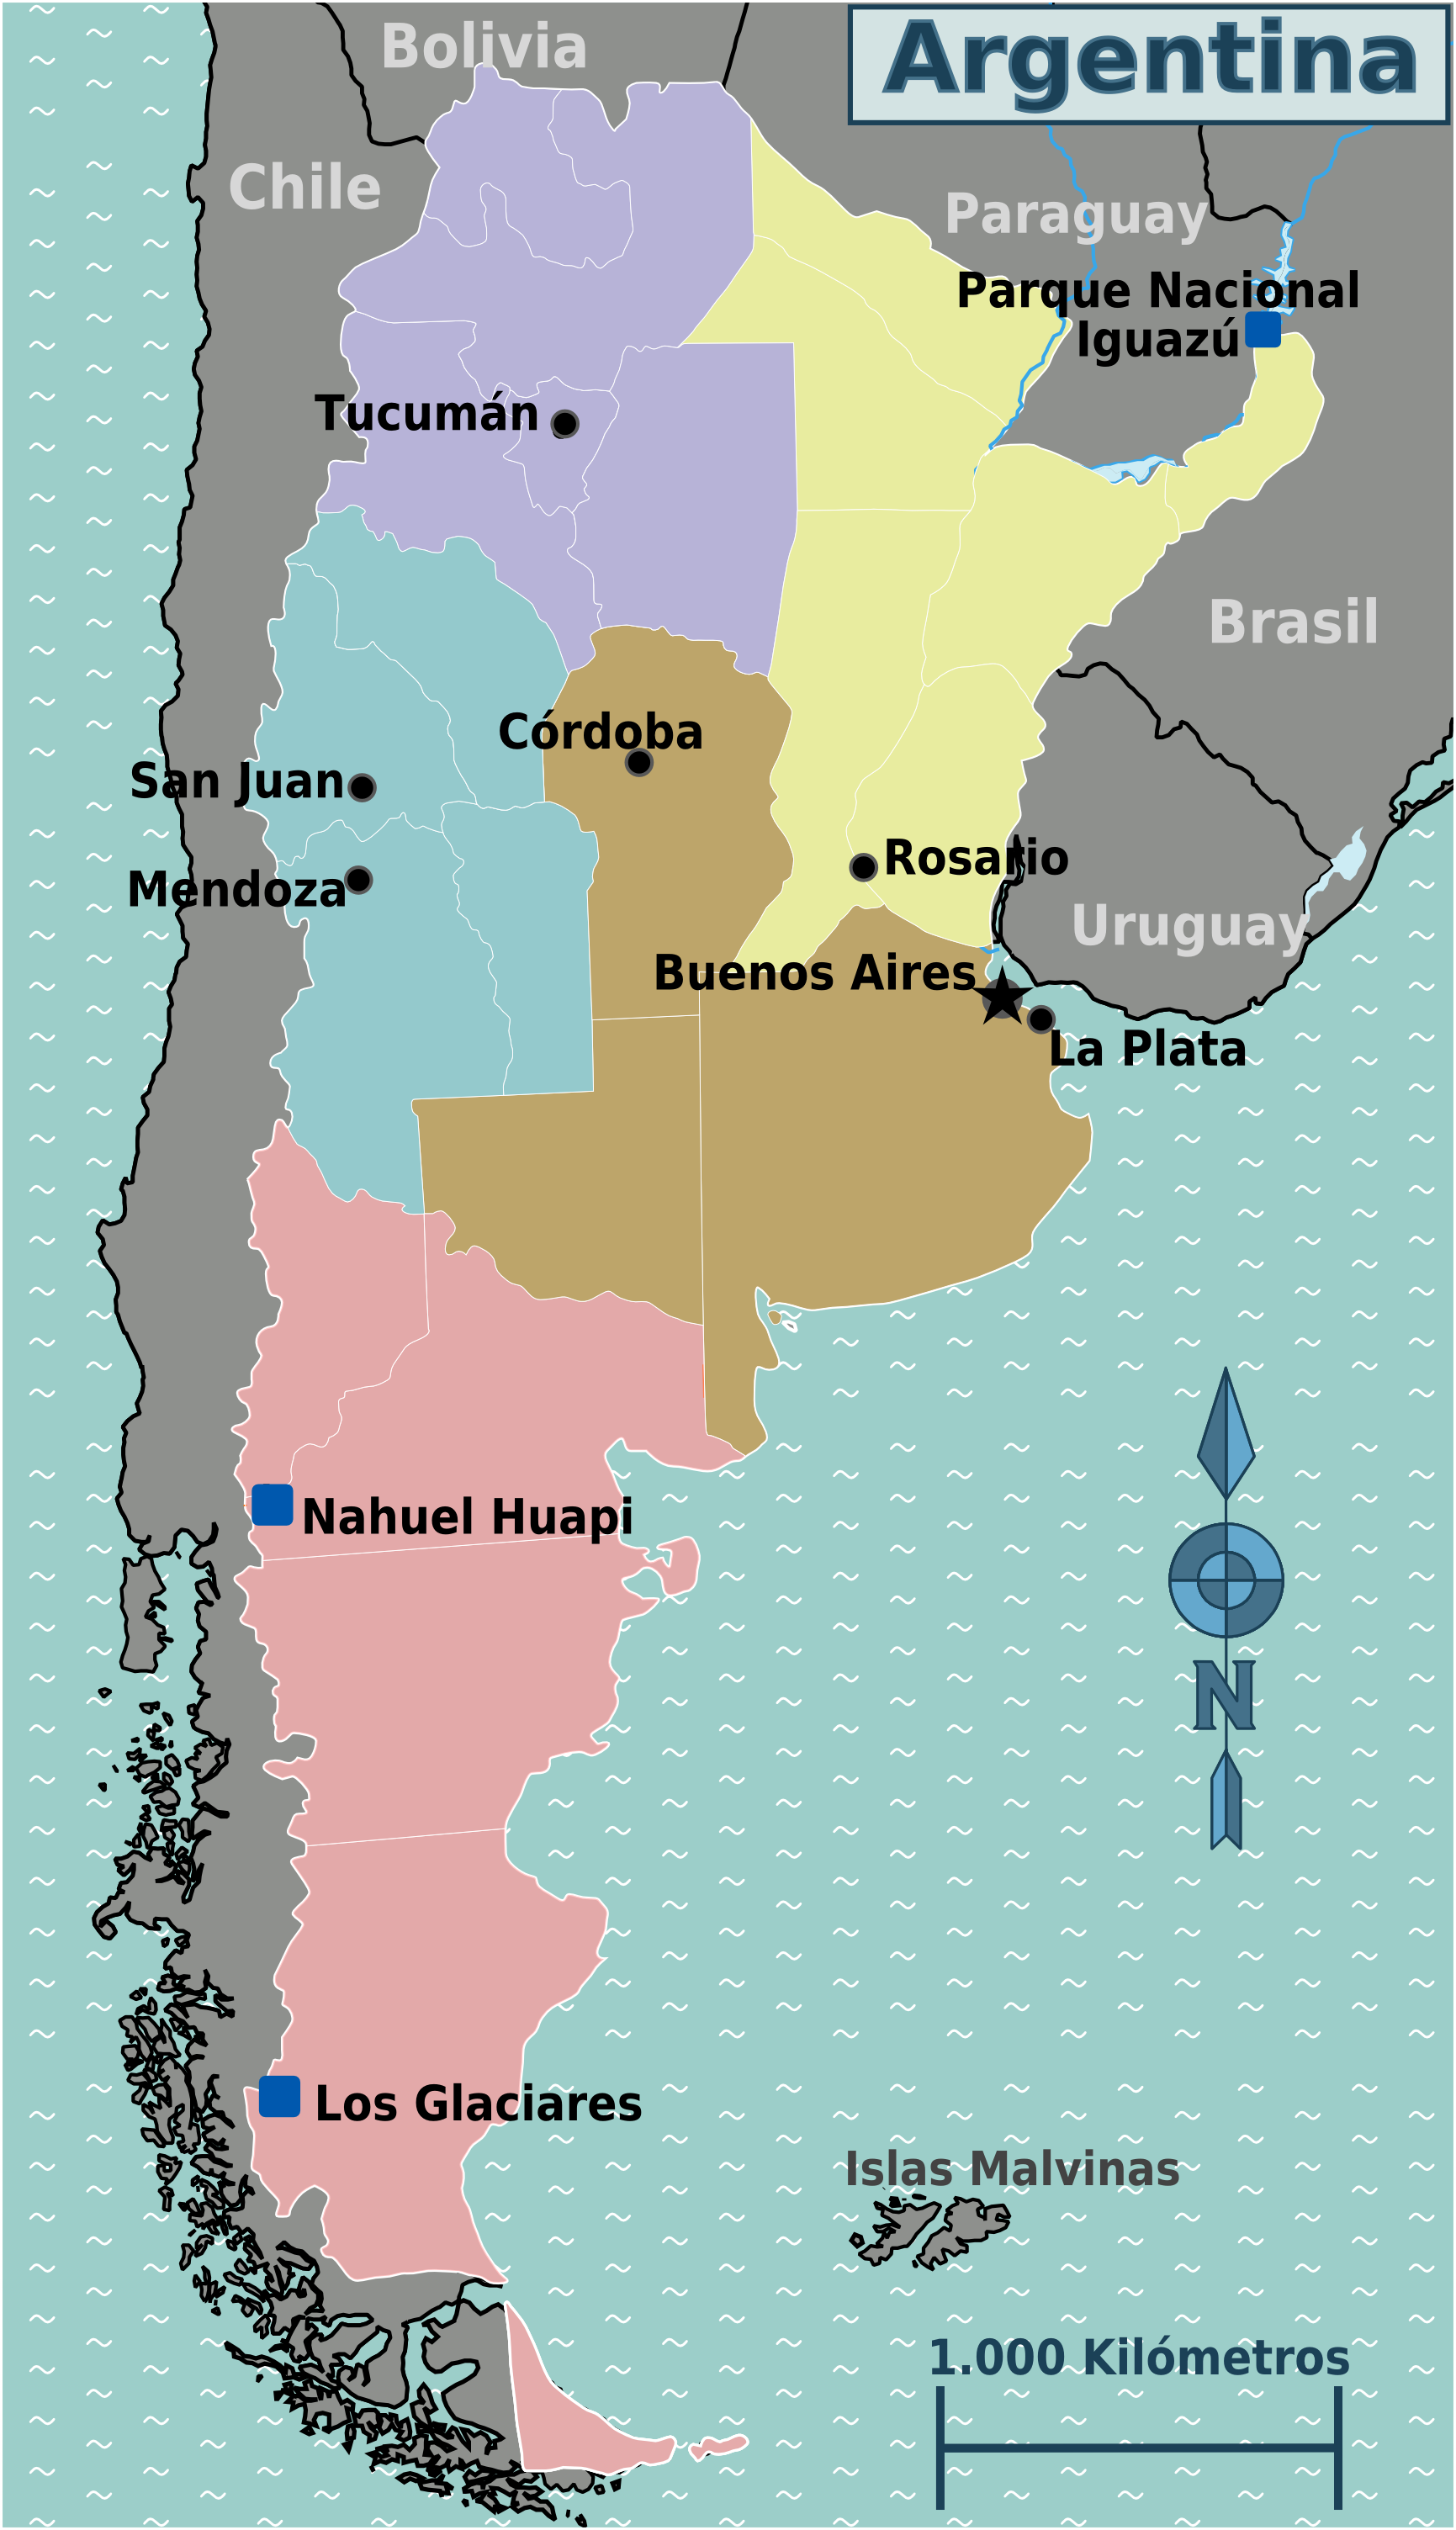 Argentina Map With Provinces - Argentina map with provinces